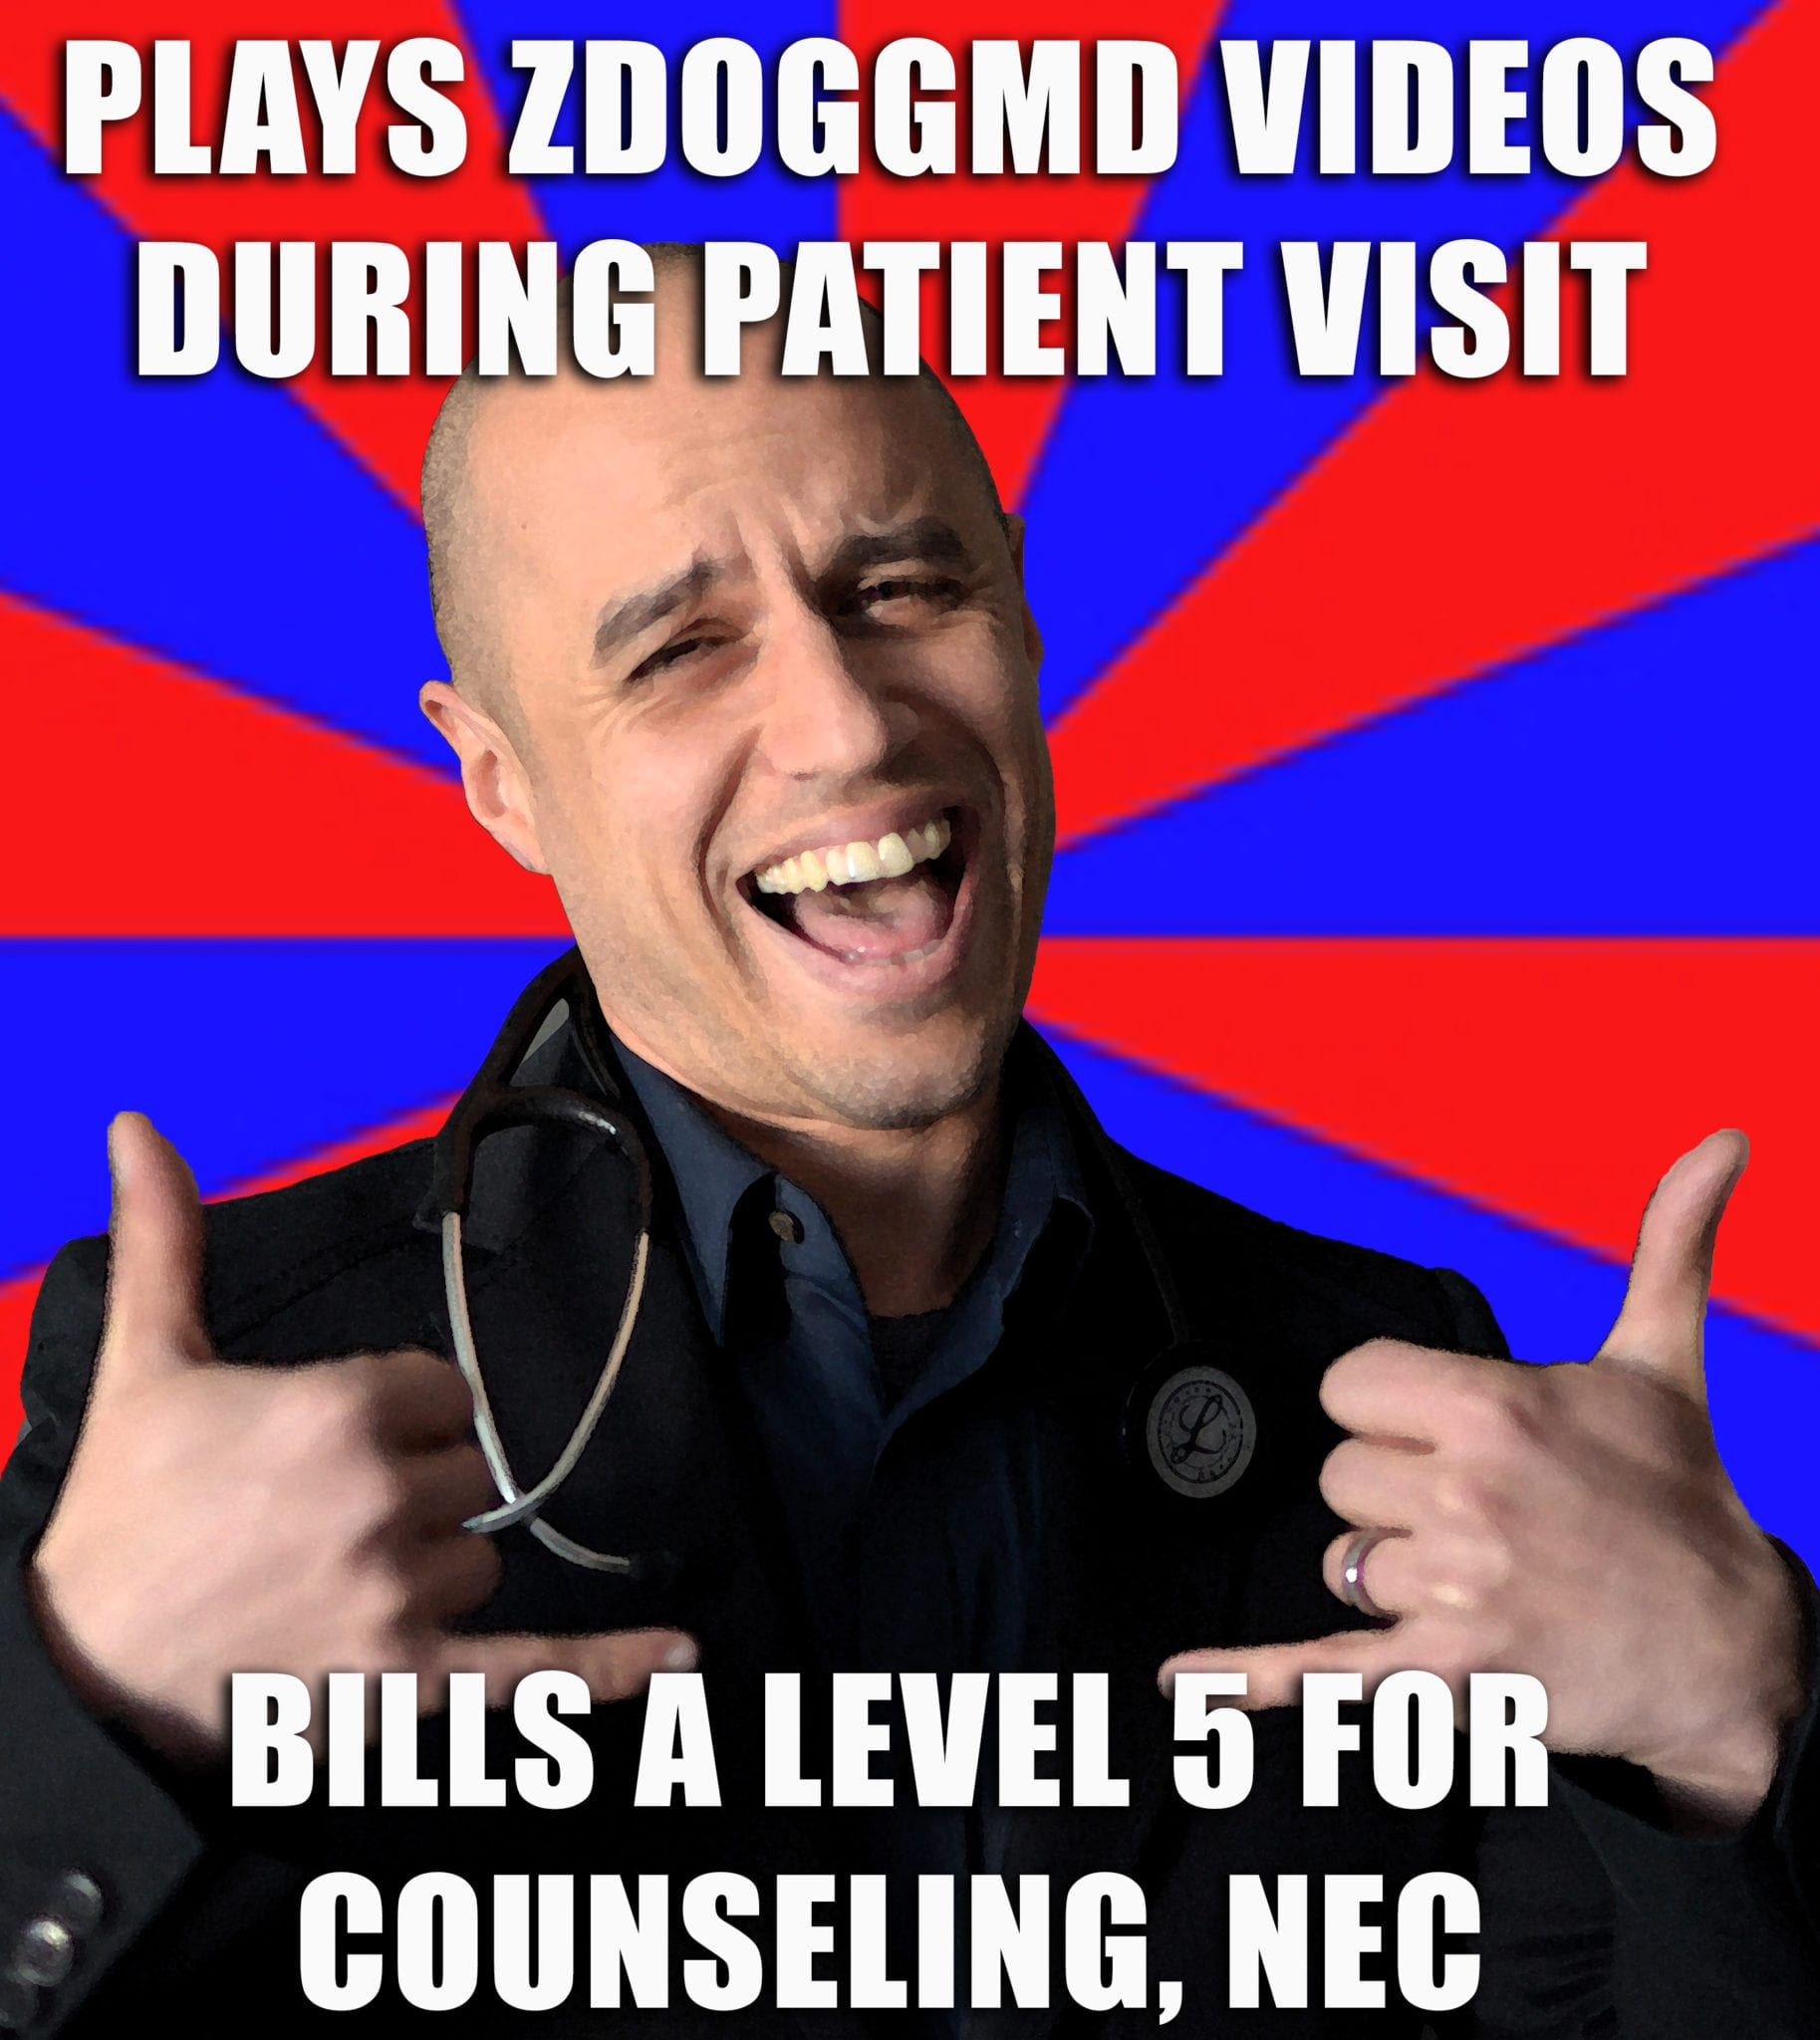 ZPartyCounselingNOS cloudy with a chance of meme from the meme of zdoggmd